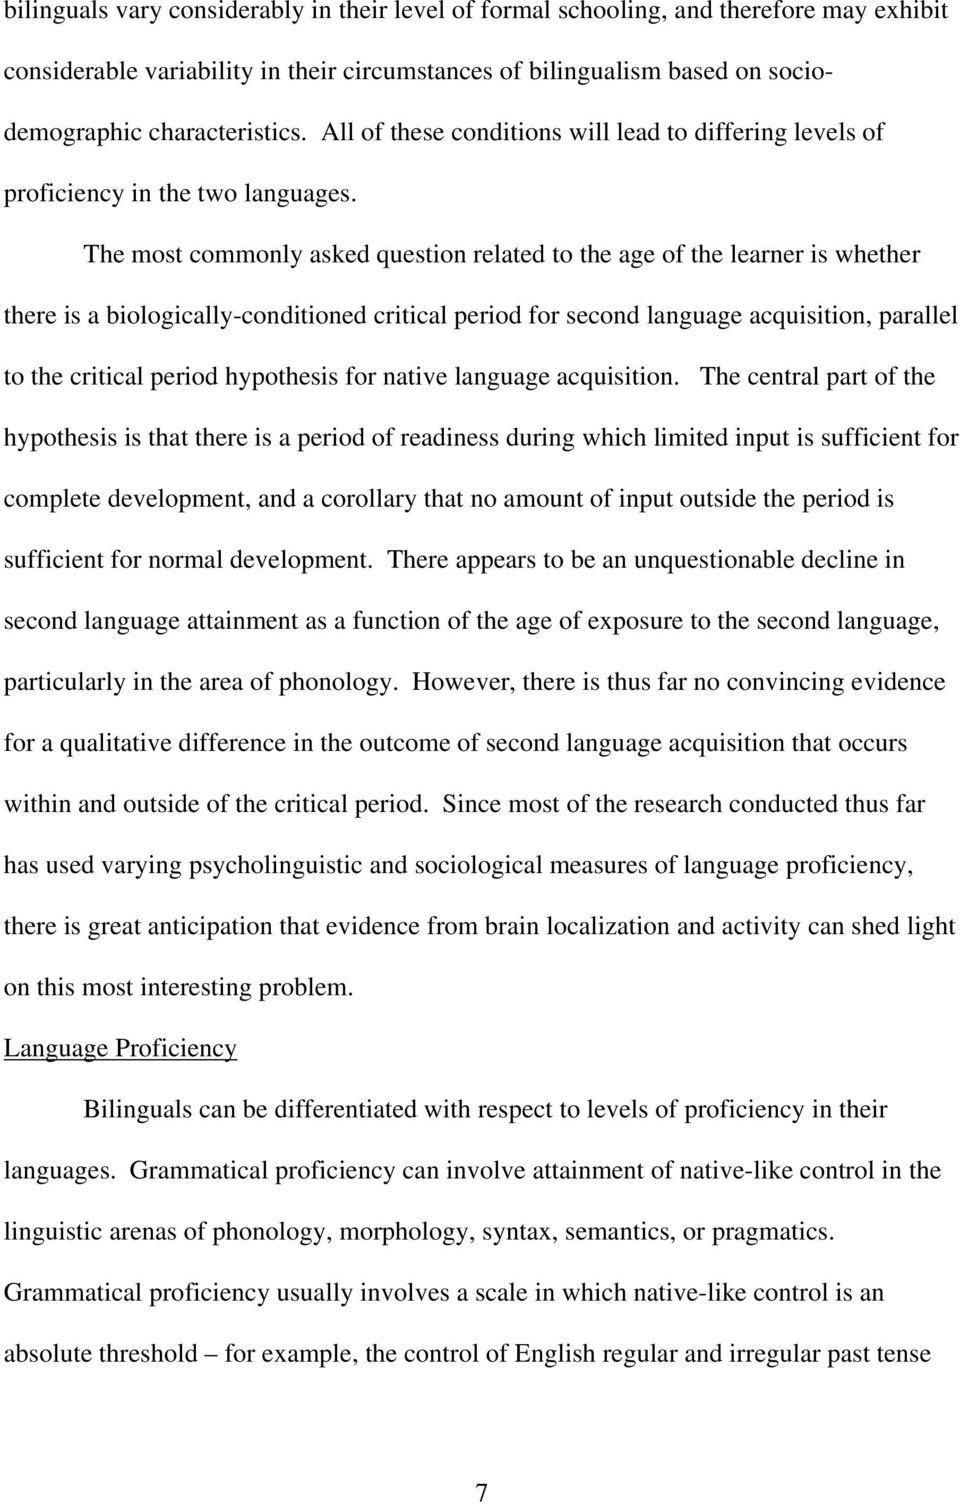 The most commonly asked question related to the age of the learner is whether there is a biologically-conditioned critical period for second language acquisition, parallel to the critical period